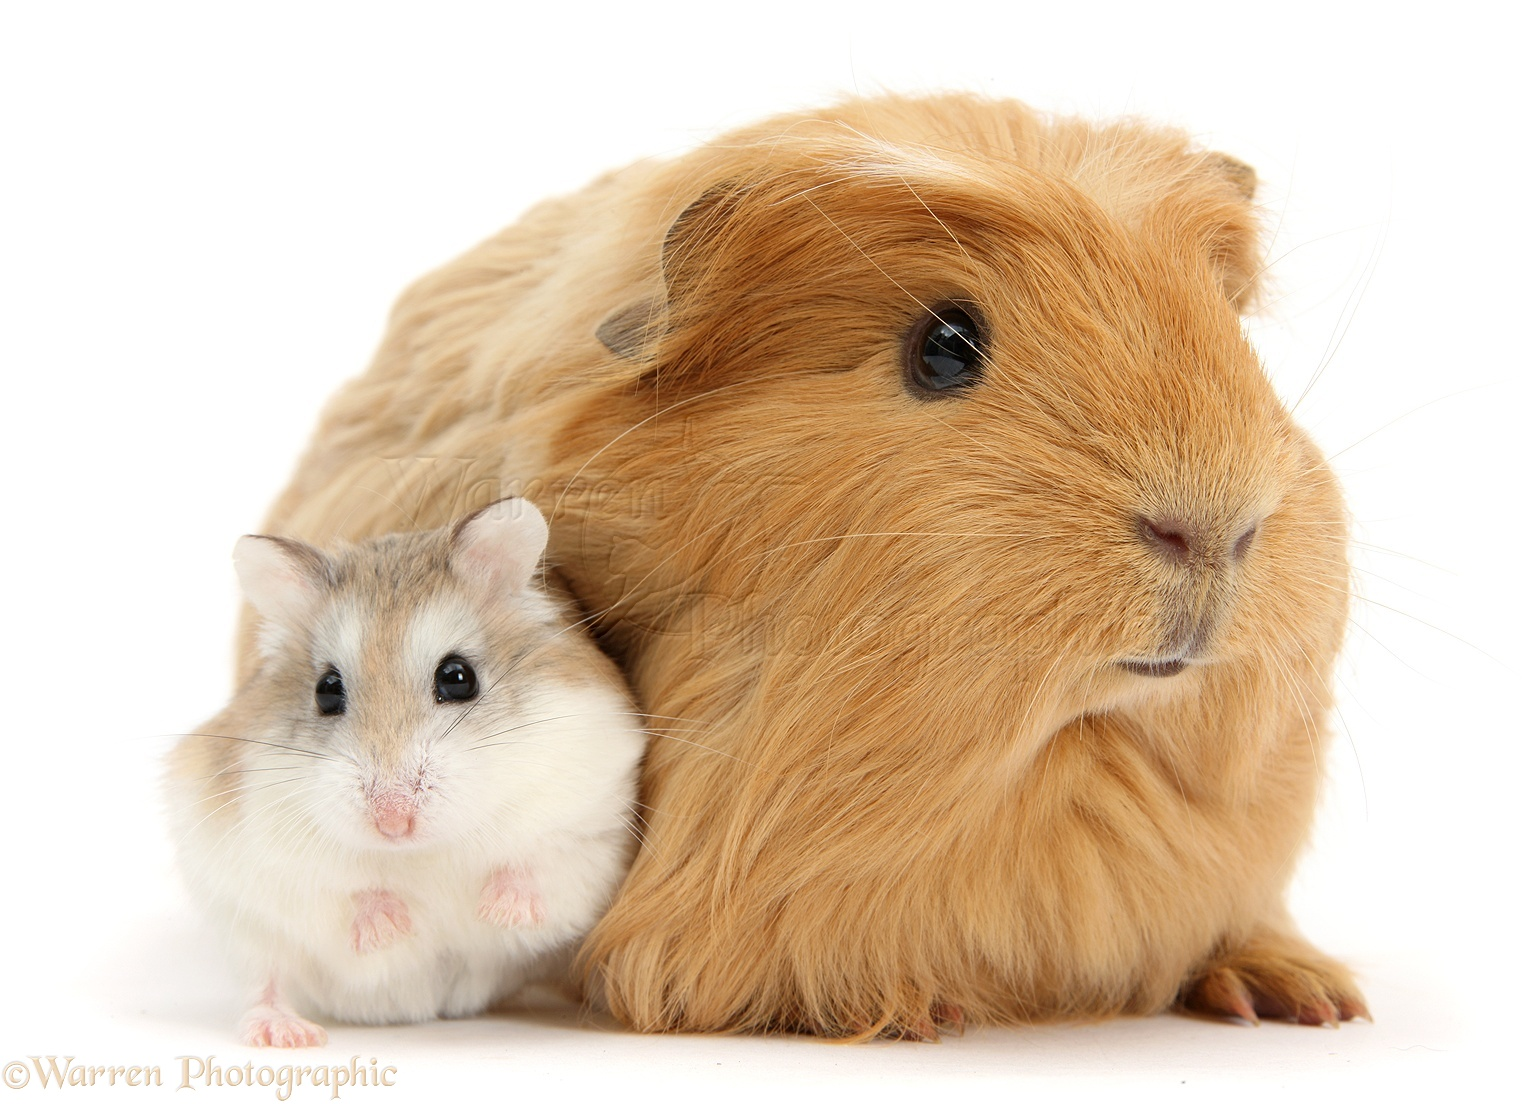 Uncategorized Hamsters And Guinea Pigs ginger guinea pig and roborovski hamster photo wp39166 hamster